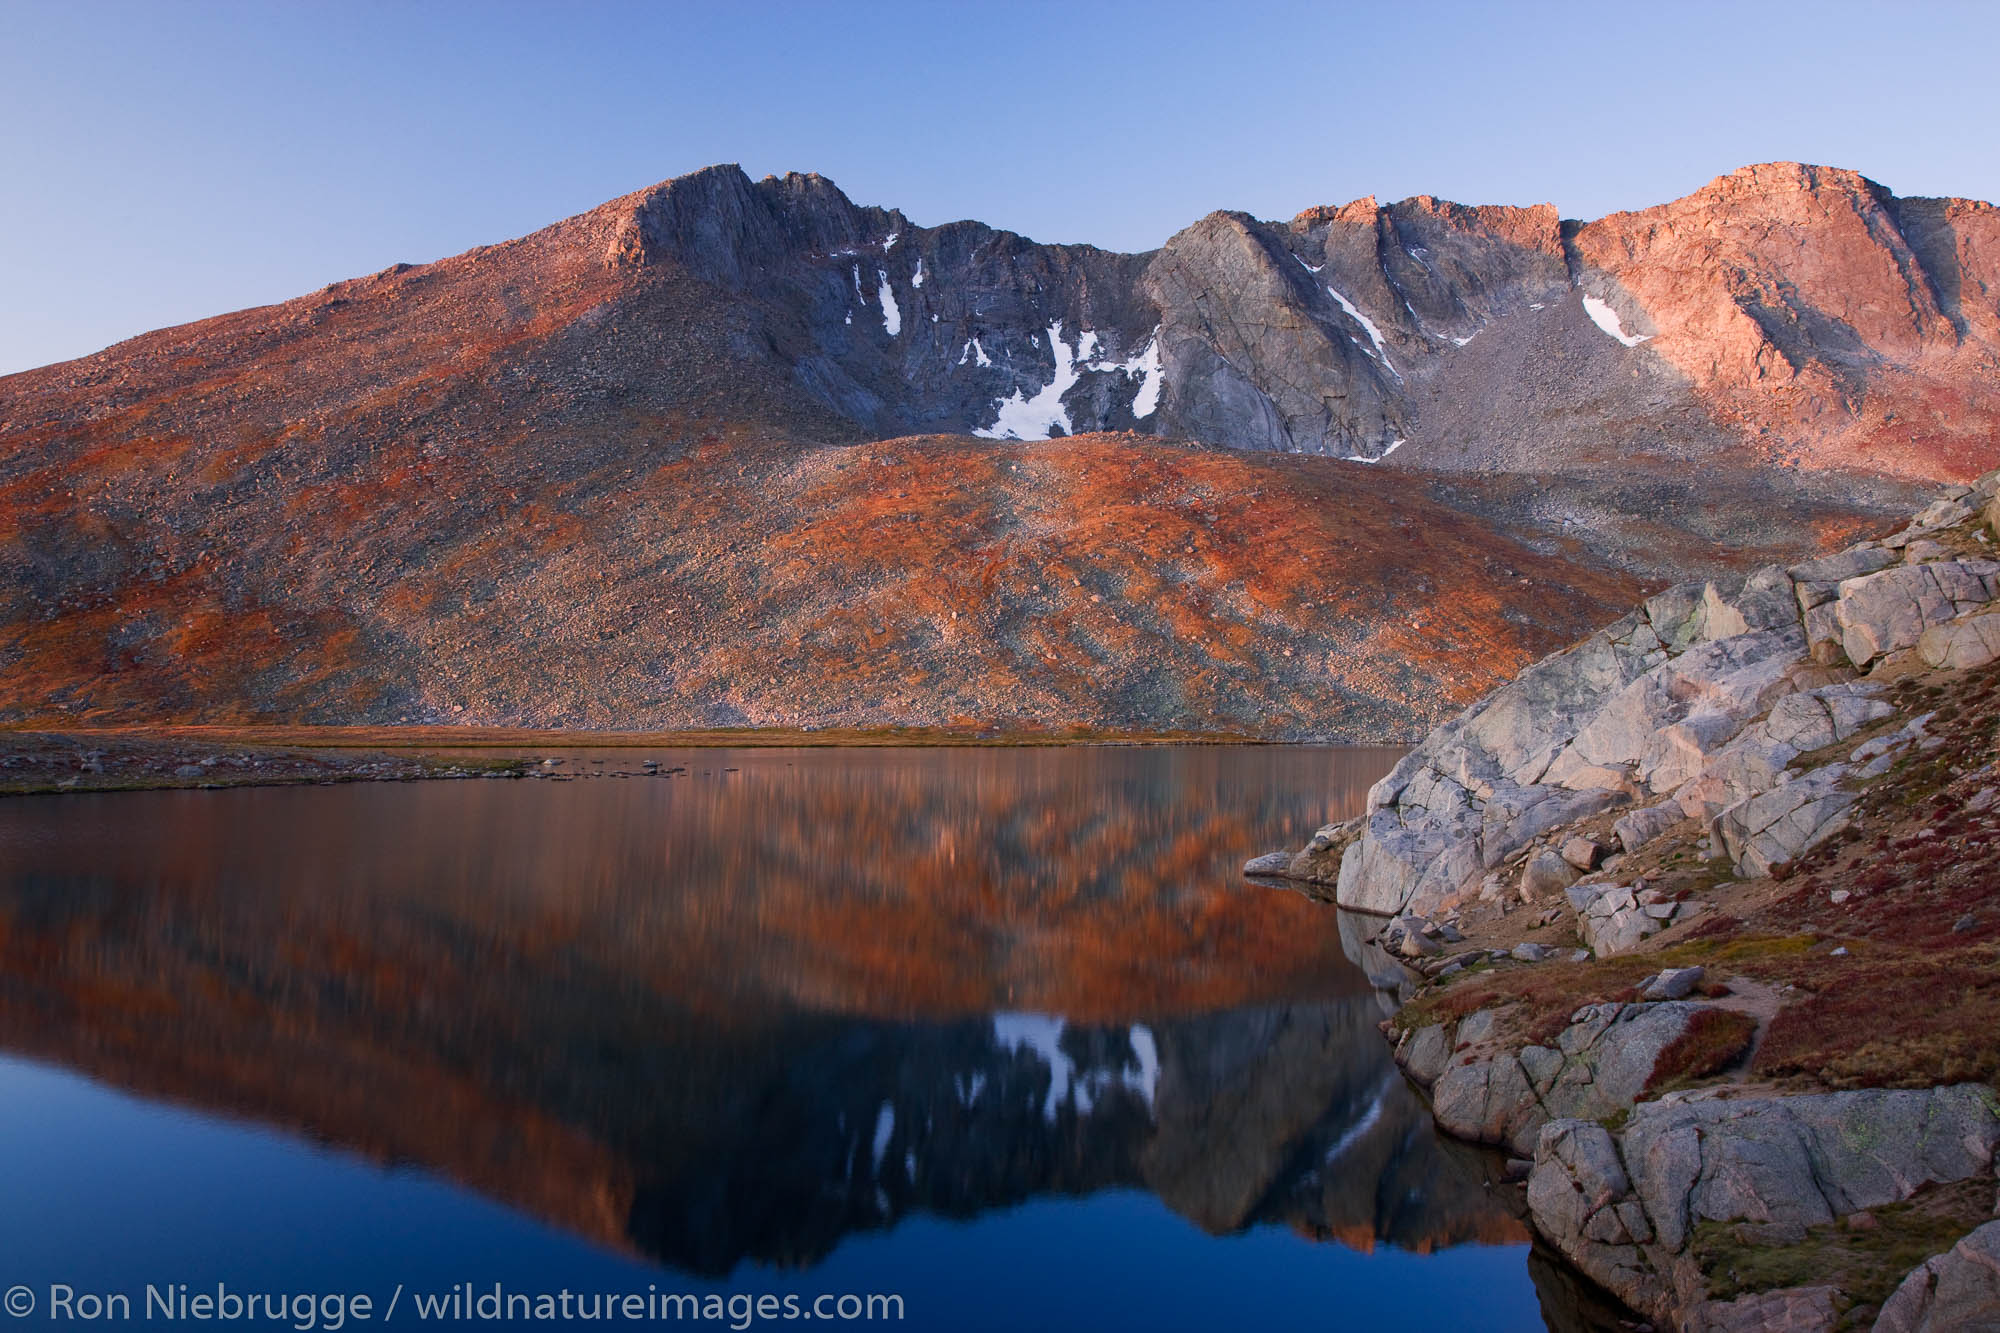 Mount Evans Recreation Area, Arapaho National Forest, Colorado, photo